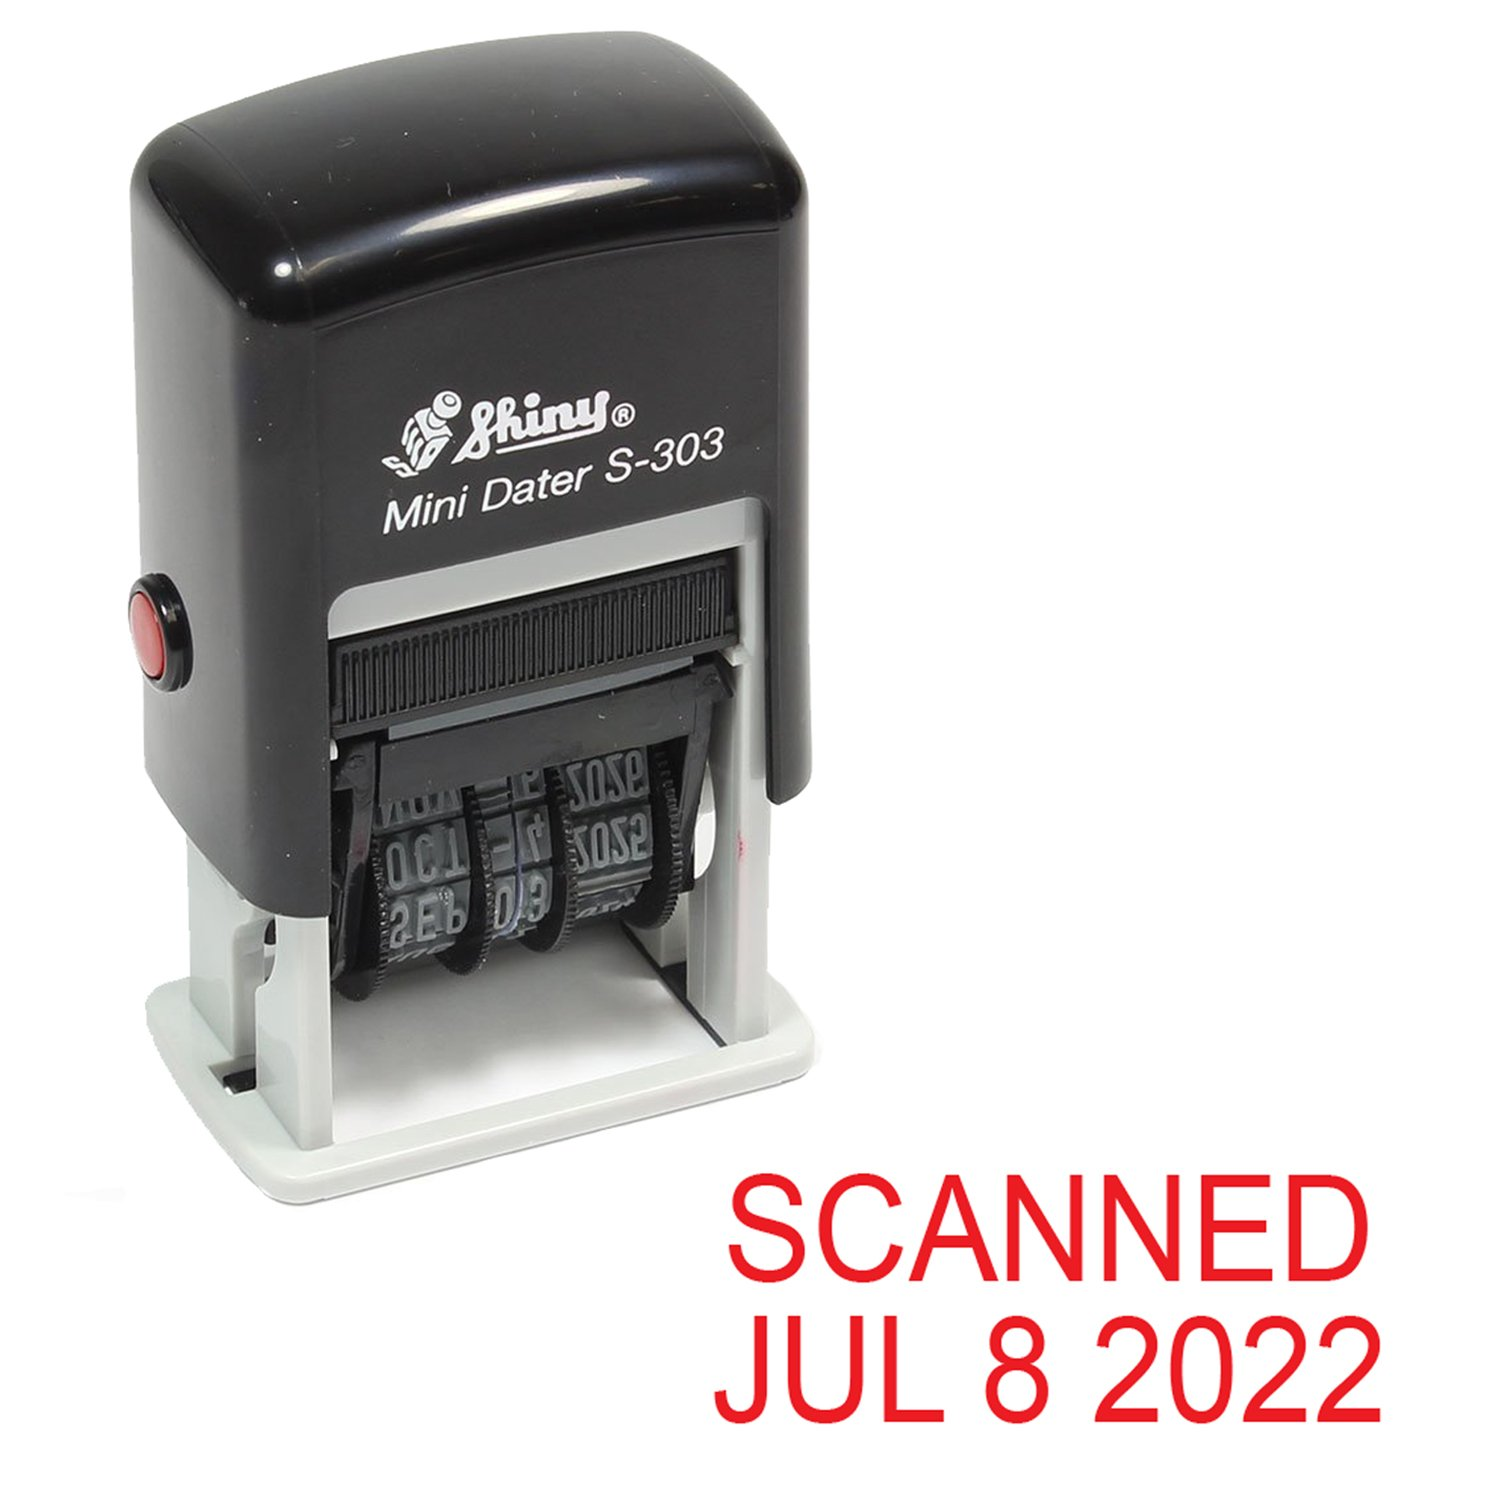 amazon com shiny self inking rubber date stamp scanned s 303